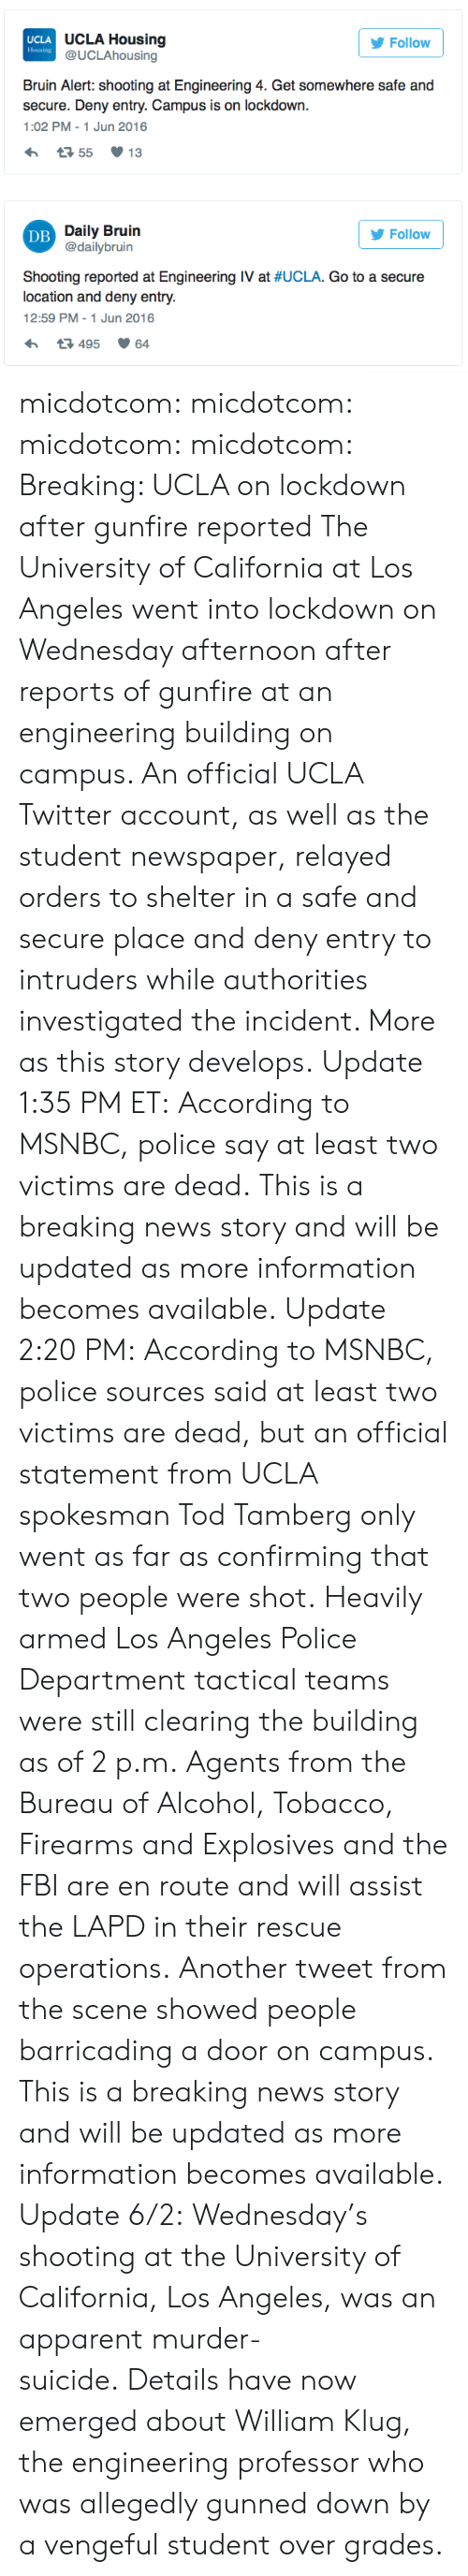 bruin: UCLA  Housing  UCLA Housing  @UCLAhousing  Follow  Bruin Alert: shooting at Engineering 4. Get somewhere safe and  secure. Deny entry. Campus is on lockdown.  1:02 PM-1 Jun 2016  Dilly 3nvilin  @dailybruin  Follow  DB  Shooting reported at Engineering IV at #UCLA. Go to a secure  location and deny entry.  12:59 PM -1 Jun 2016  3495 64 micdotcom:  micdotcom:  micdotcom:  micdotcom:  Breaking: UCLA on lockdown after gunfire reported  The University of California at Los Angeles went into lockdown on Wednesday afternoon after reports of gunfire at an engineering building on campus. An official UCLA Twitter account, as well as the student newspaper, relayed orders to shelter in a safe and secure place and deny entry to intruders while authorities investigated the incident. More as this story develops.  Update 1:35 PM ET:According to MSNBC, police say at least two victims are dead. This is a breaking news story and will be updated as more information becomes available.  Update 2:20 PM:According to MSNBC, police sources said at least two victims are dead, but an official statement from UCLA spokesman Tod Tamberg only went as far as confirming that two people were shot. Heavily armed Los Angeles Police Department tactical teams were still clearing the building as of 2 p.m. Agents from the Bureau of Alcohol, Tobacco, Firearms and Explosives and the FBI are en route and will assist the LAPD in their rescue operations. Another tweet from the scene showed people barricading a door on campus. This is a breaking news story and will be updated as more information becomes available.   Update 6/2:Wednesday's shooting at the University of California, Los Angeles, was an apparent murder-suicide.Details have now emerged about William Klug, the engineering professor who was allegedly gunned down by a vengeful student over grades.